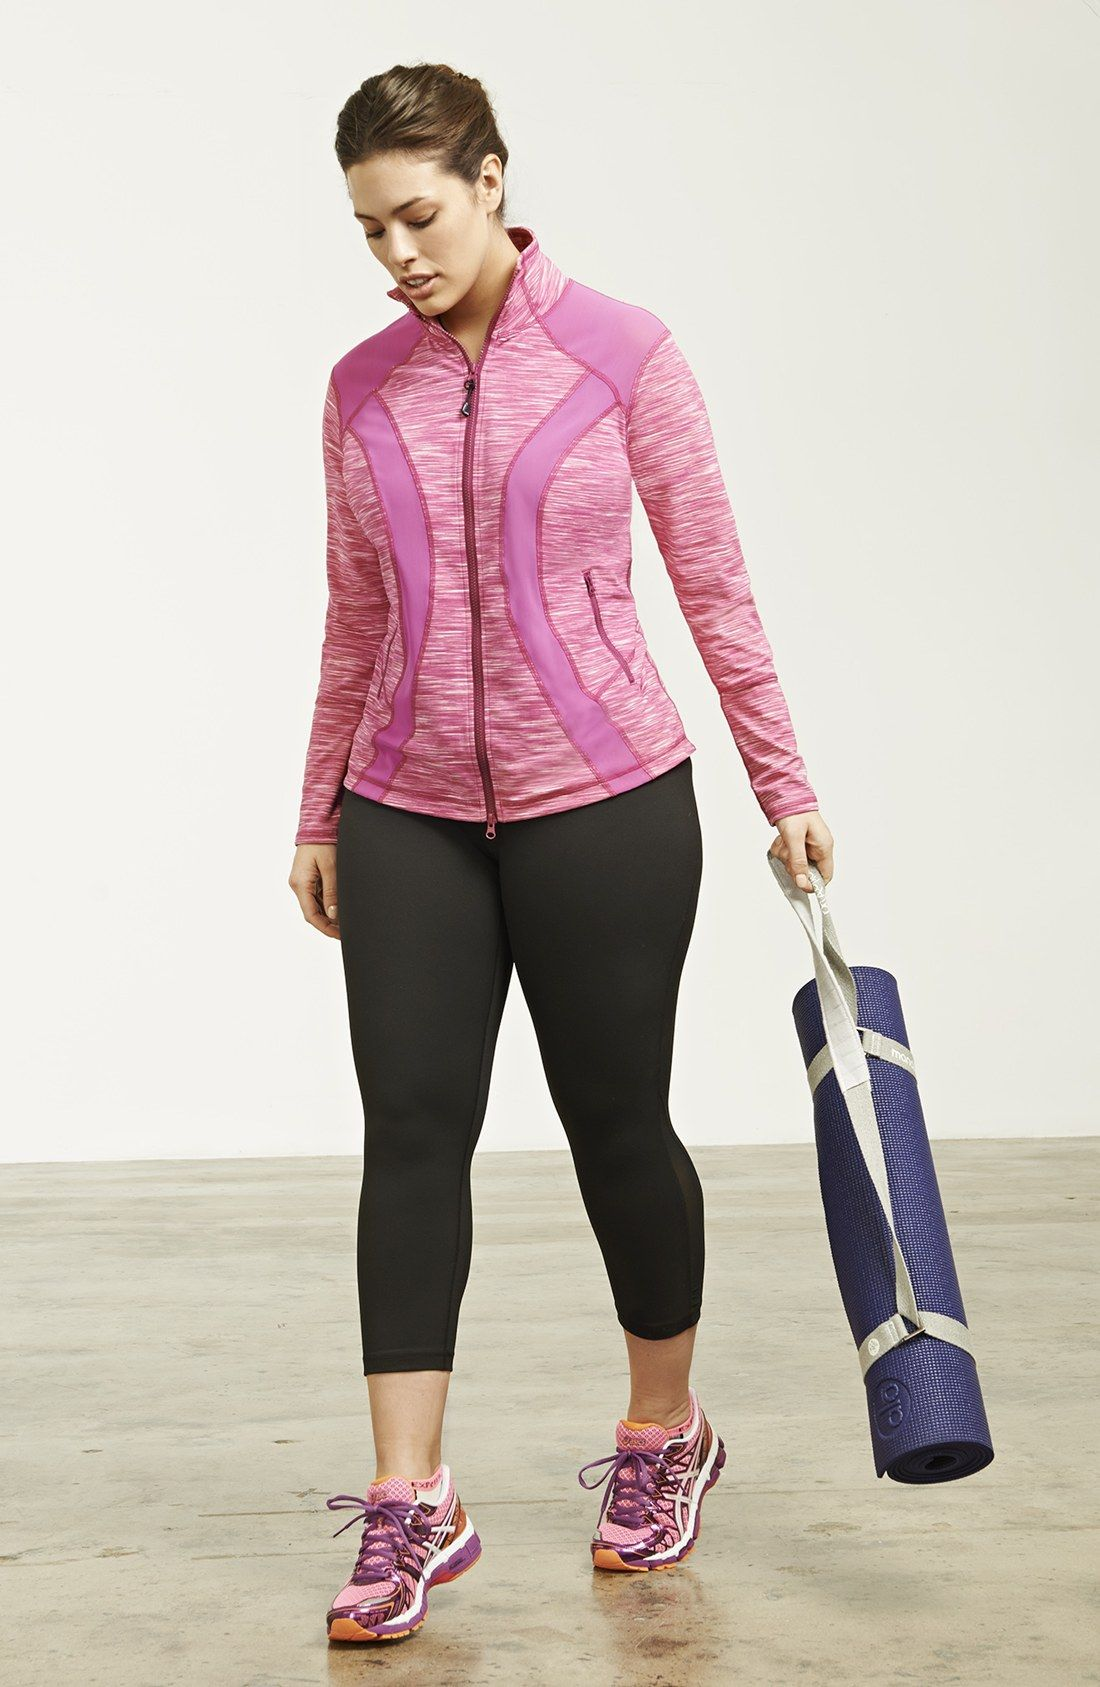 Zella Jacket & Capri Leggings | Nordstrom | Plus Size Fashion 웃 ...